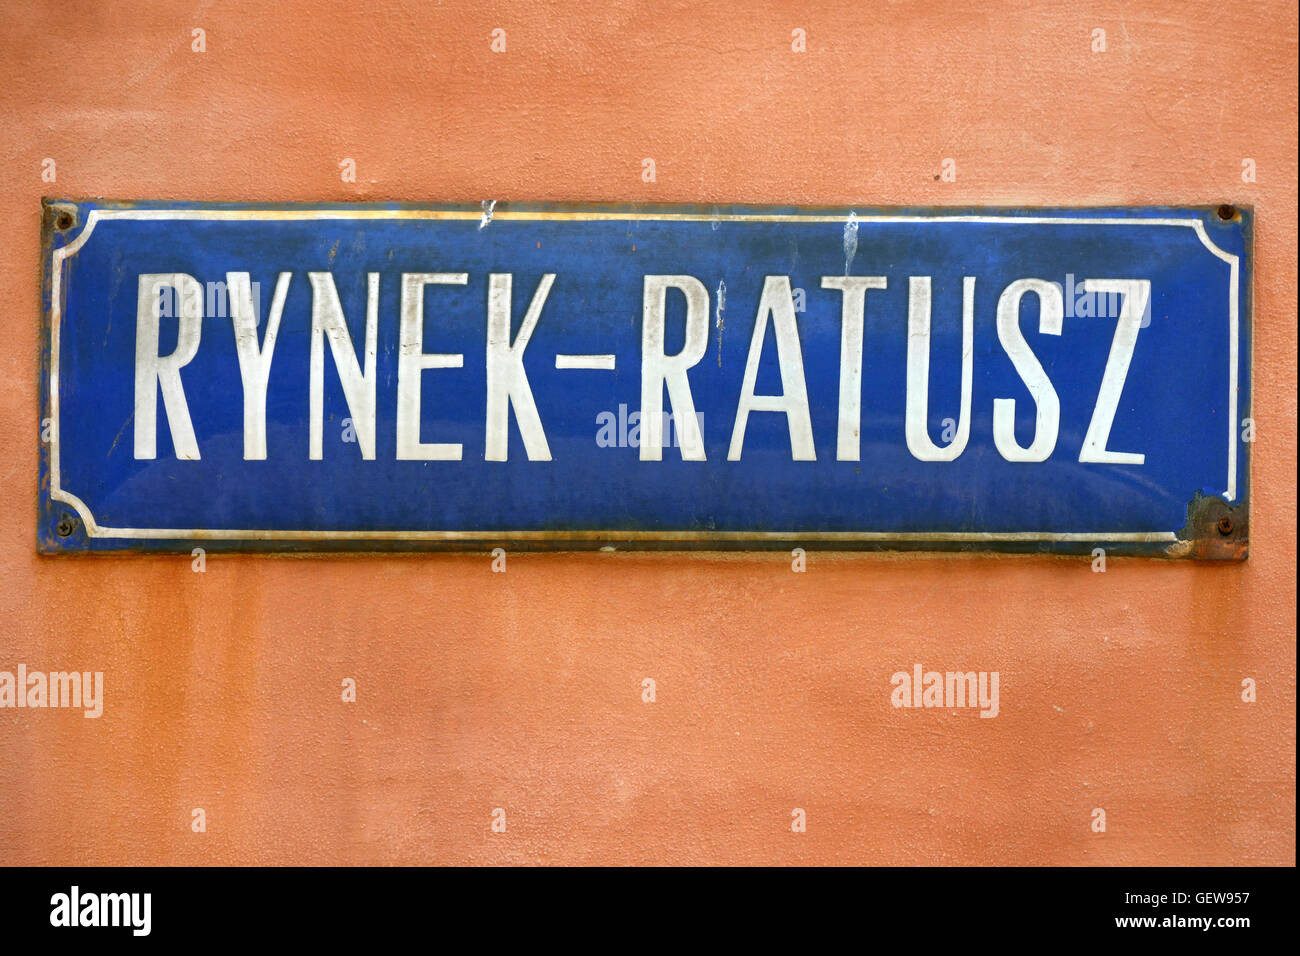 Street sign of Rynek Ratusz on Market Square in the Old Town of Wroclaw - Poland. Stock Photo